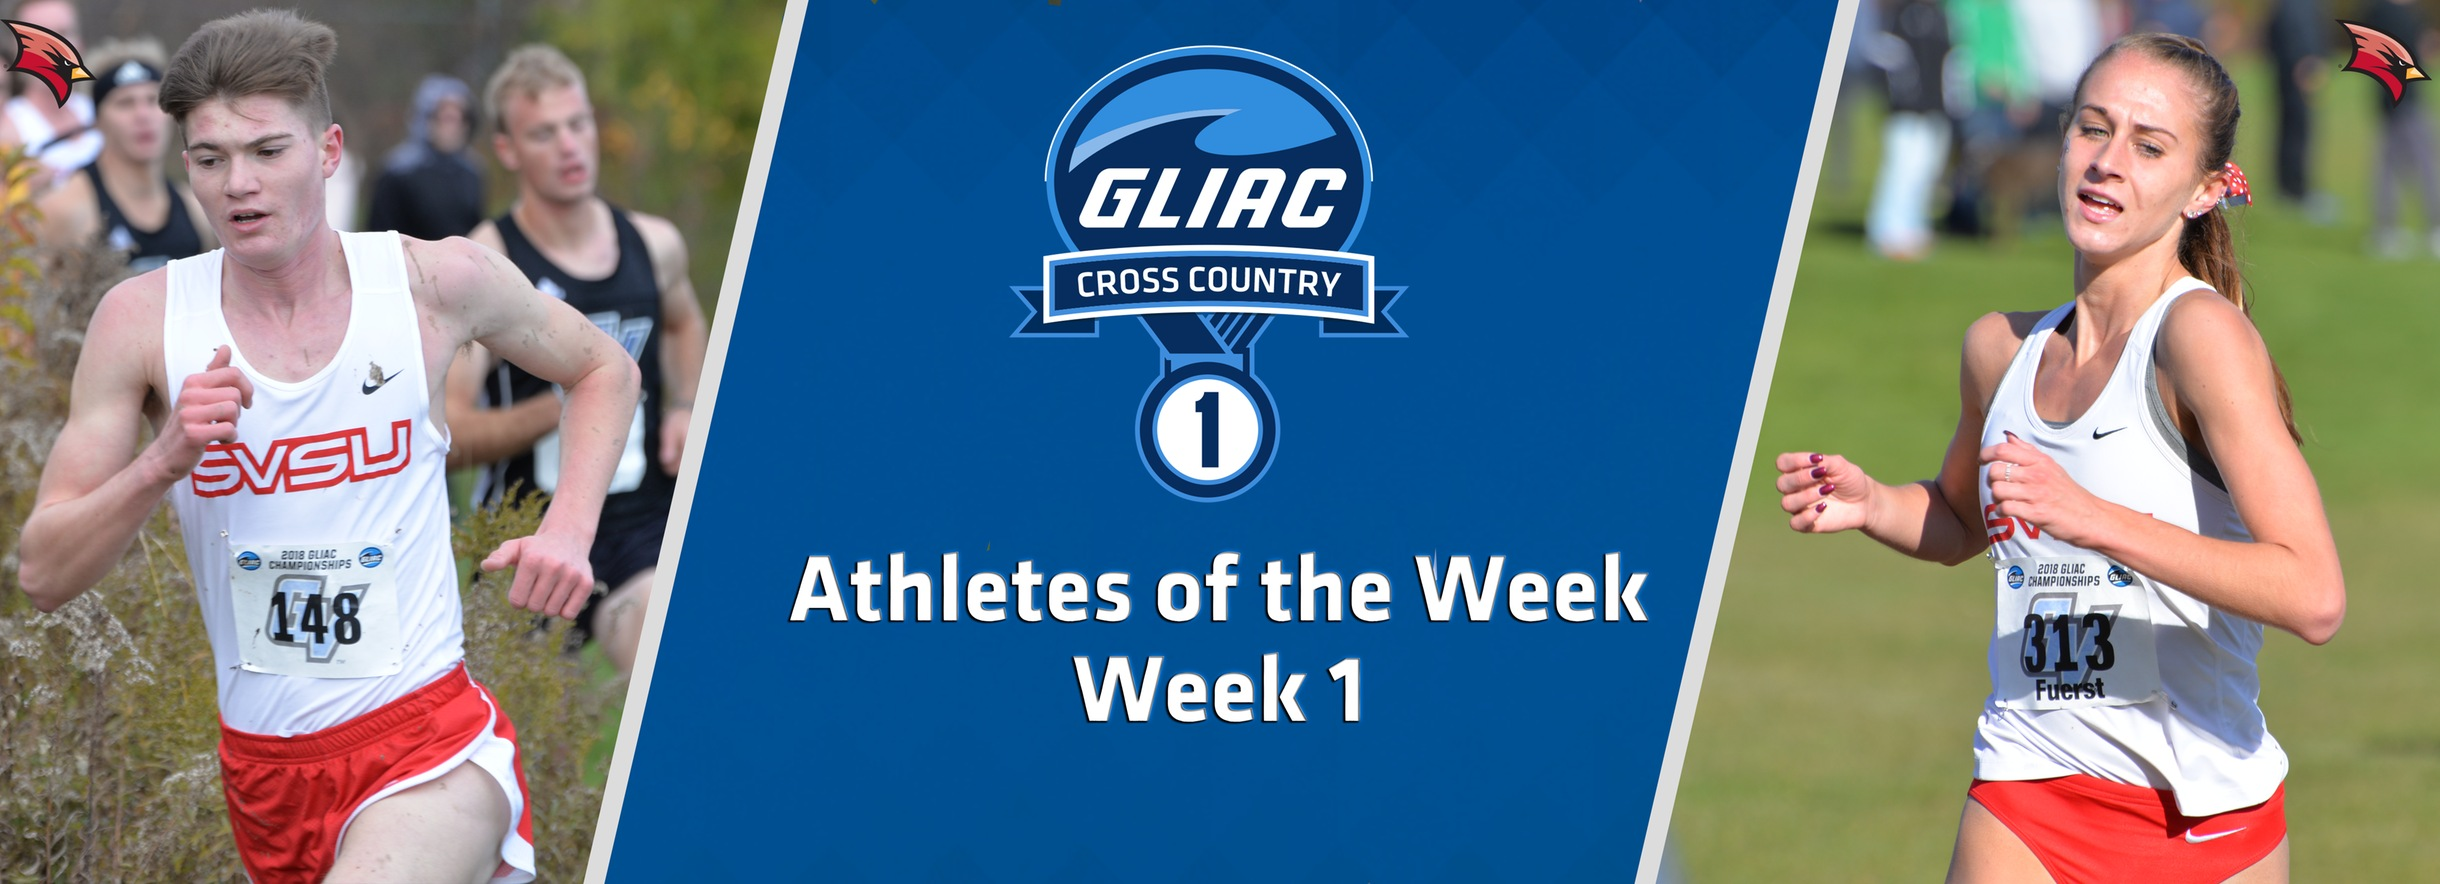 Saginaw Valley's Stimpfel and Fuerst Sweep GLIAC Cross Country Athlete of the Week Accolades